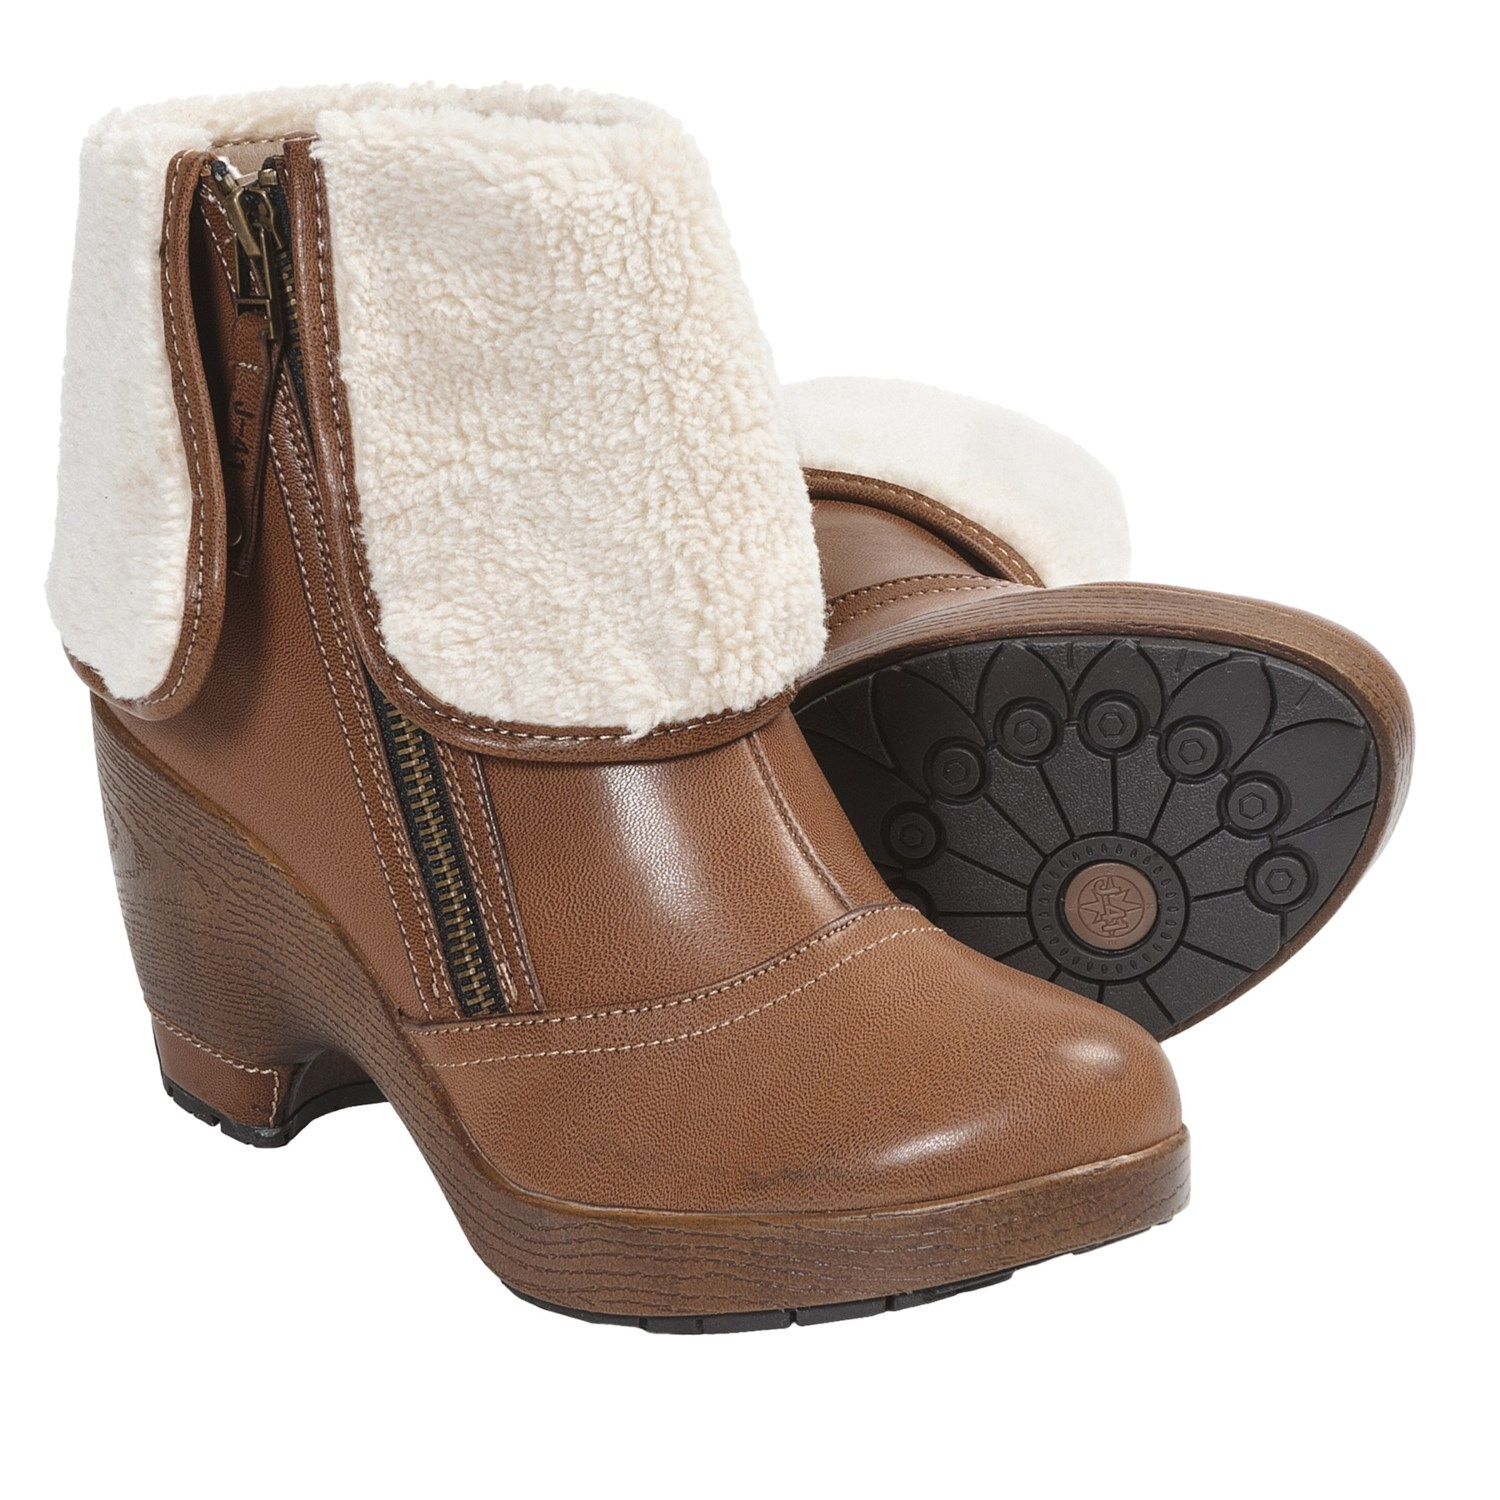 j 41 naples boots for women - photo#12